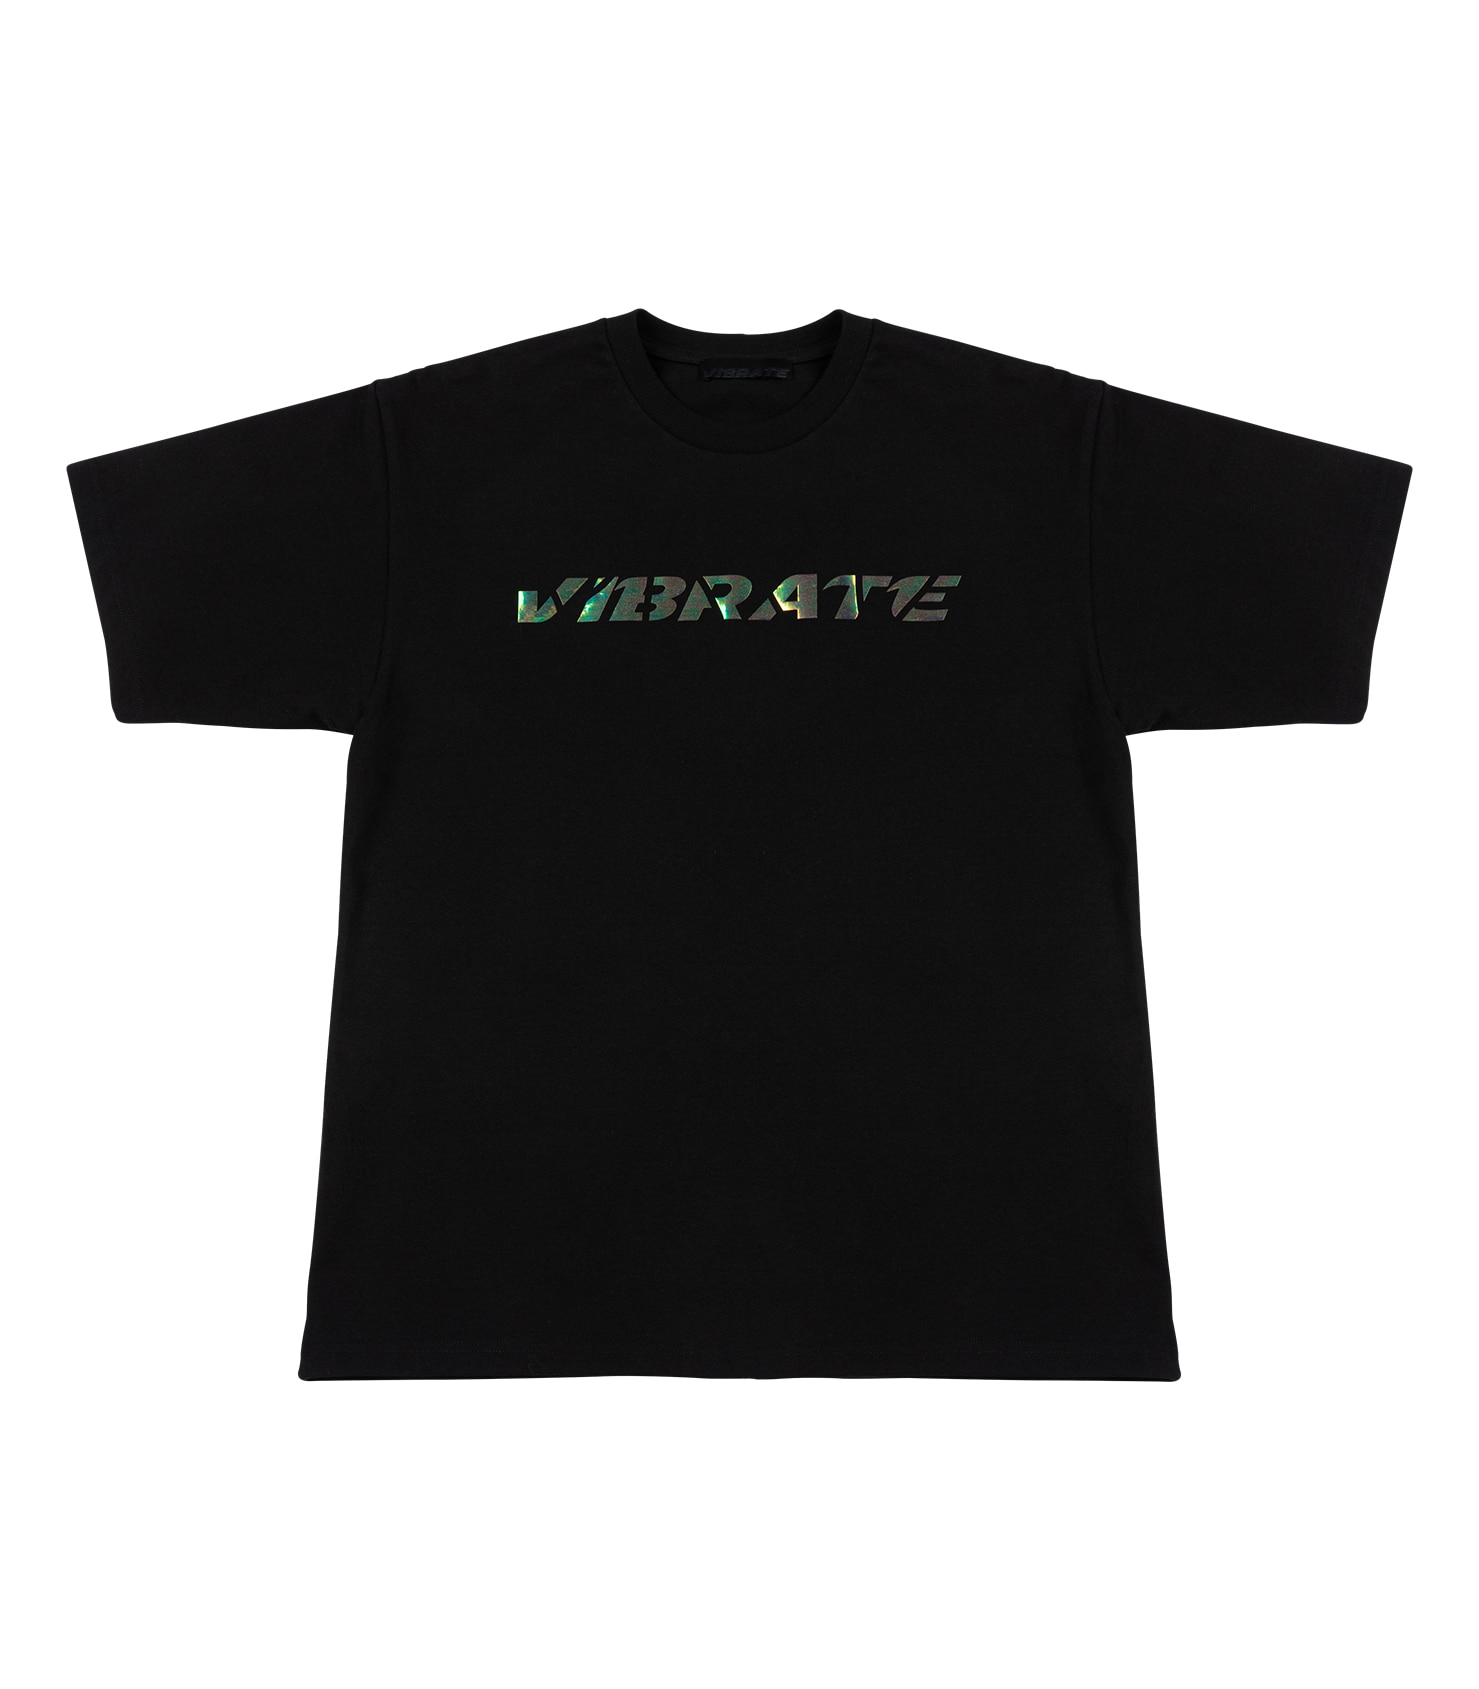 V FLASH M007 T-SHIRT (BLACK)